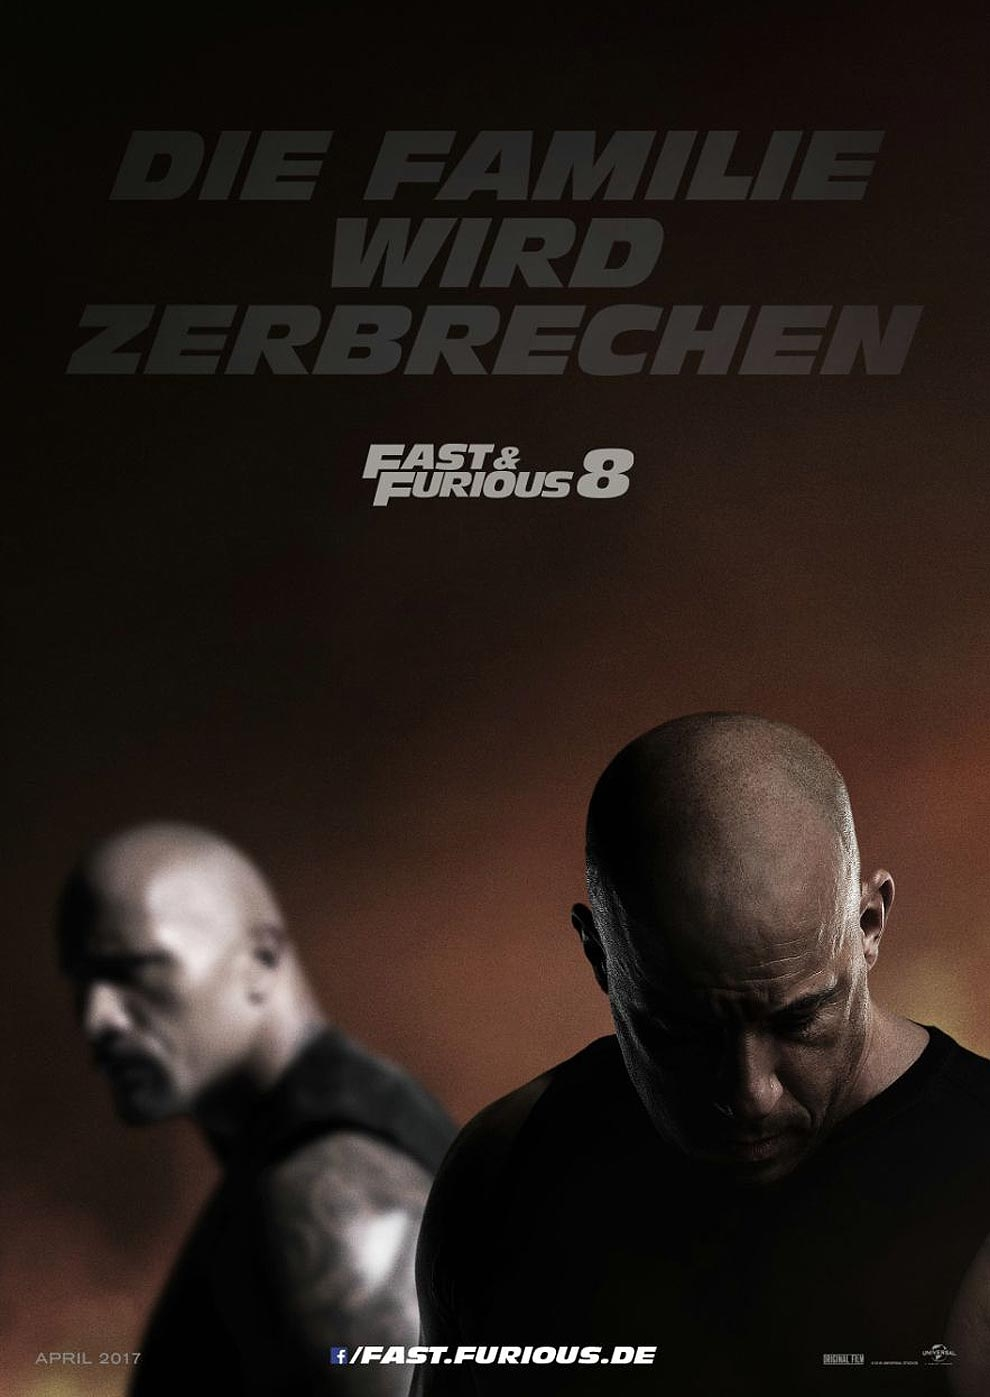 Fast & Furious 8 (Poster)